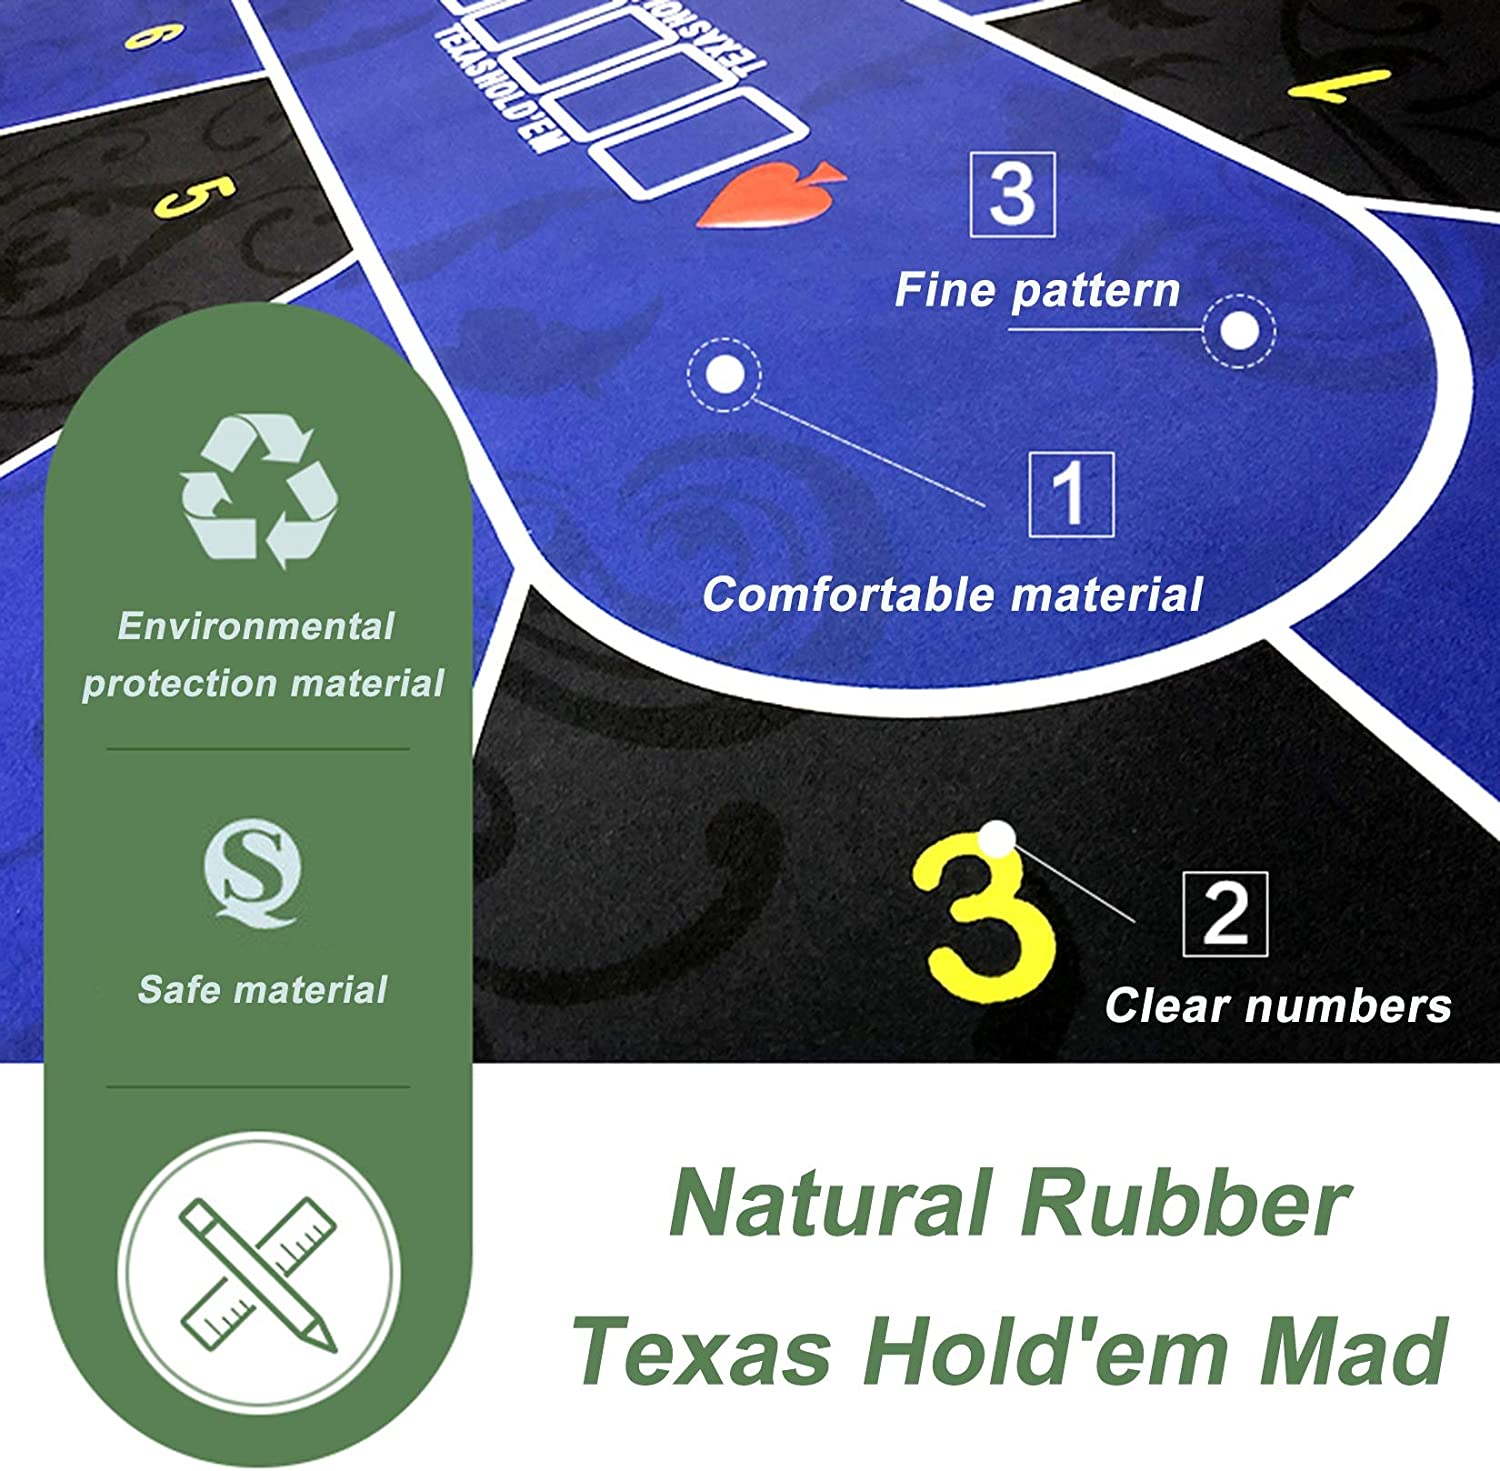 Blackjack Professional Texas Holdem Poker Mat Casino,Blue,S 10 Player Poker Table Pad,Portable Poker Table Top Layout for Play Cards Poker Games